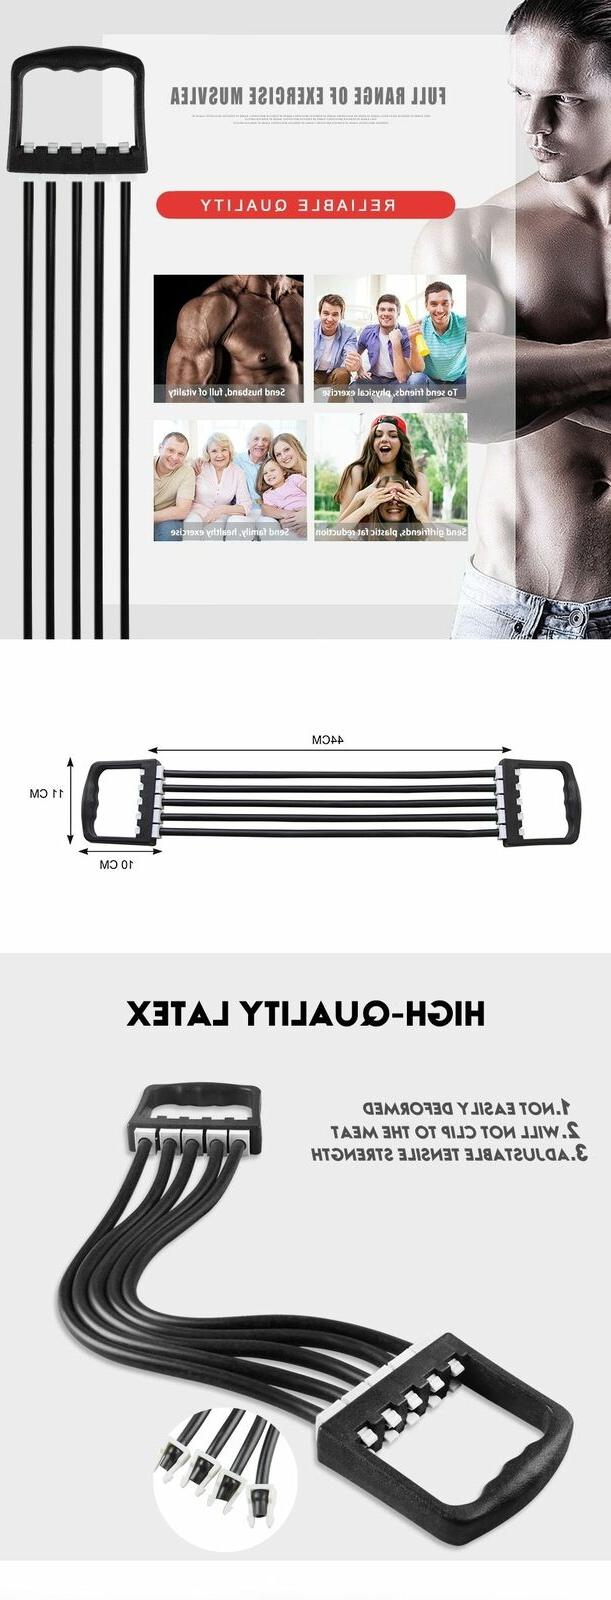 Resistance Band Sports Home Workout Fitness Supply Expander